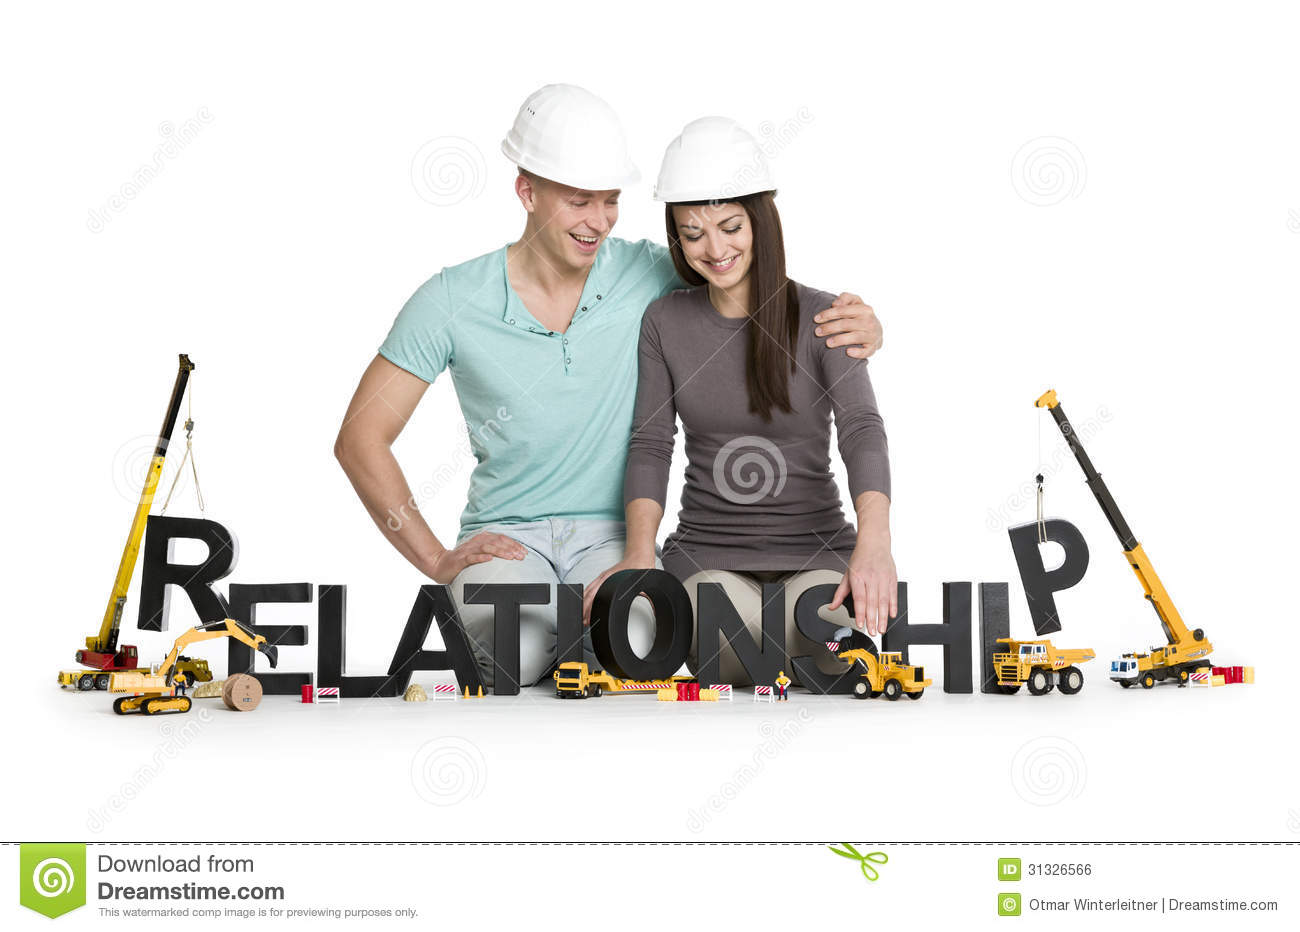 Marriages and working women